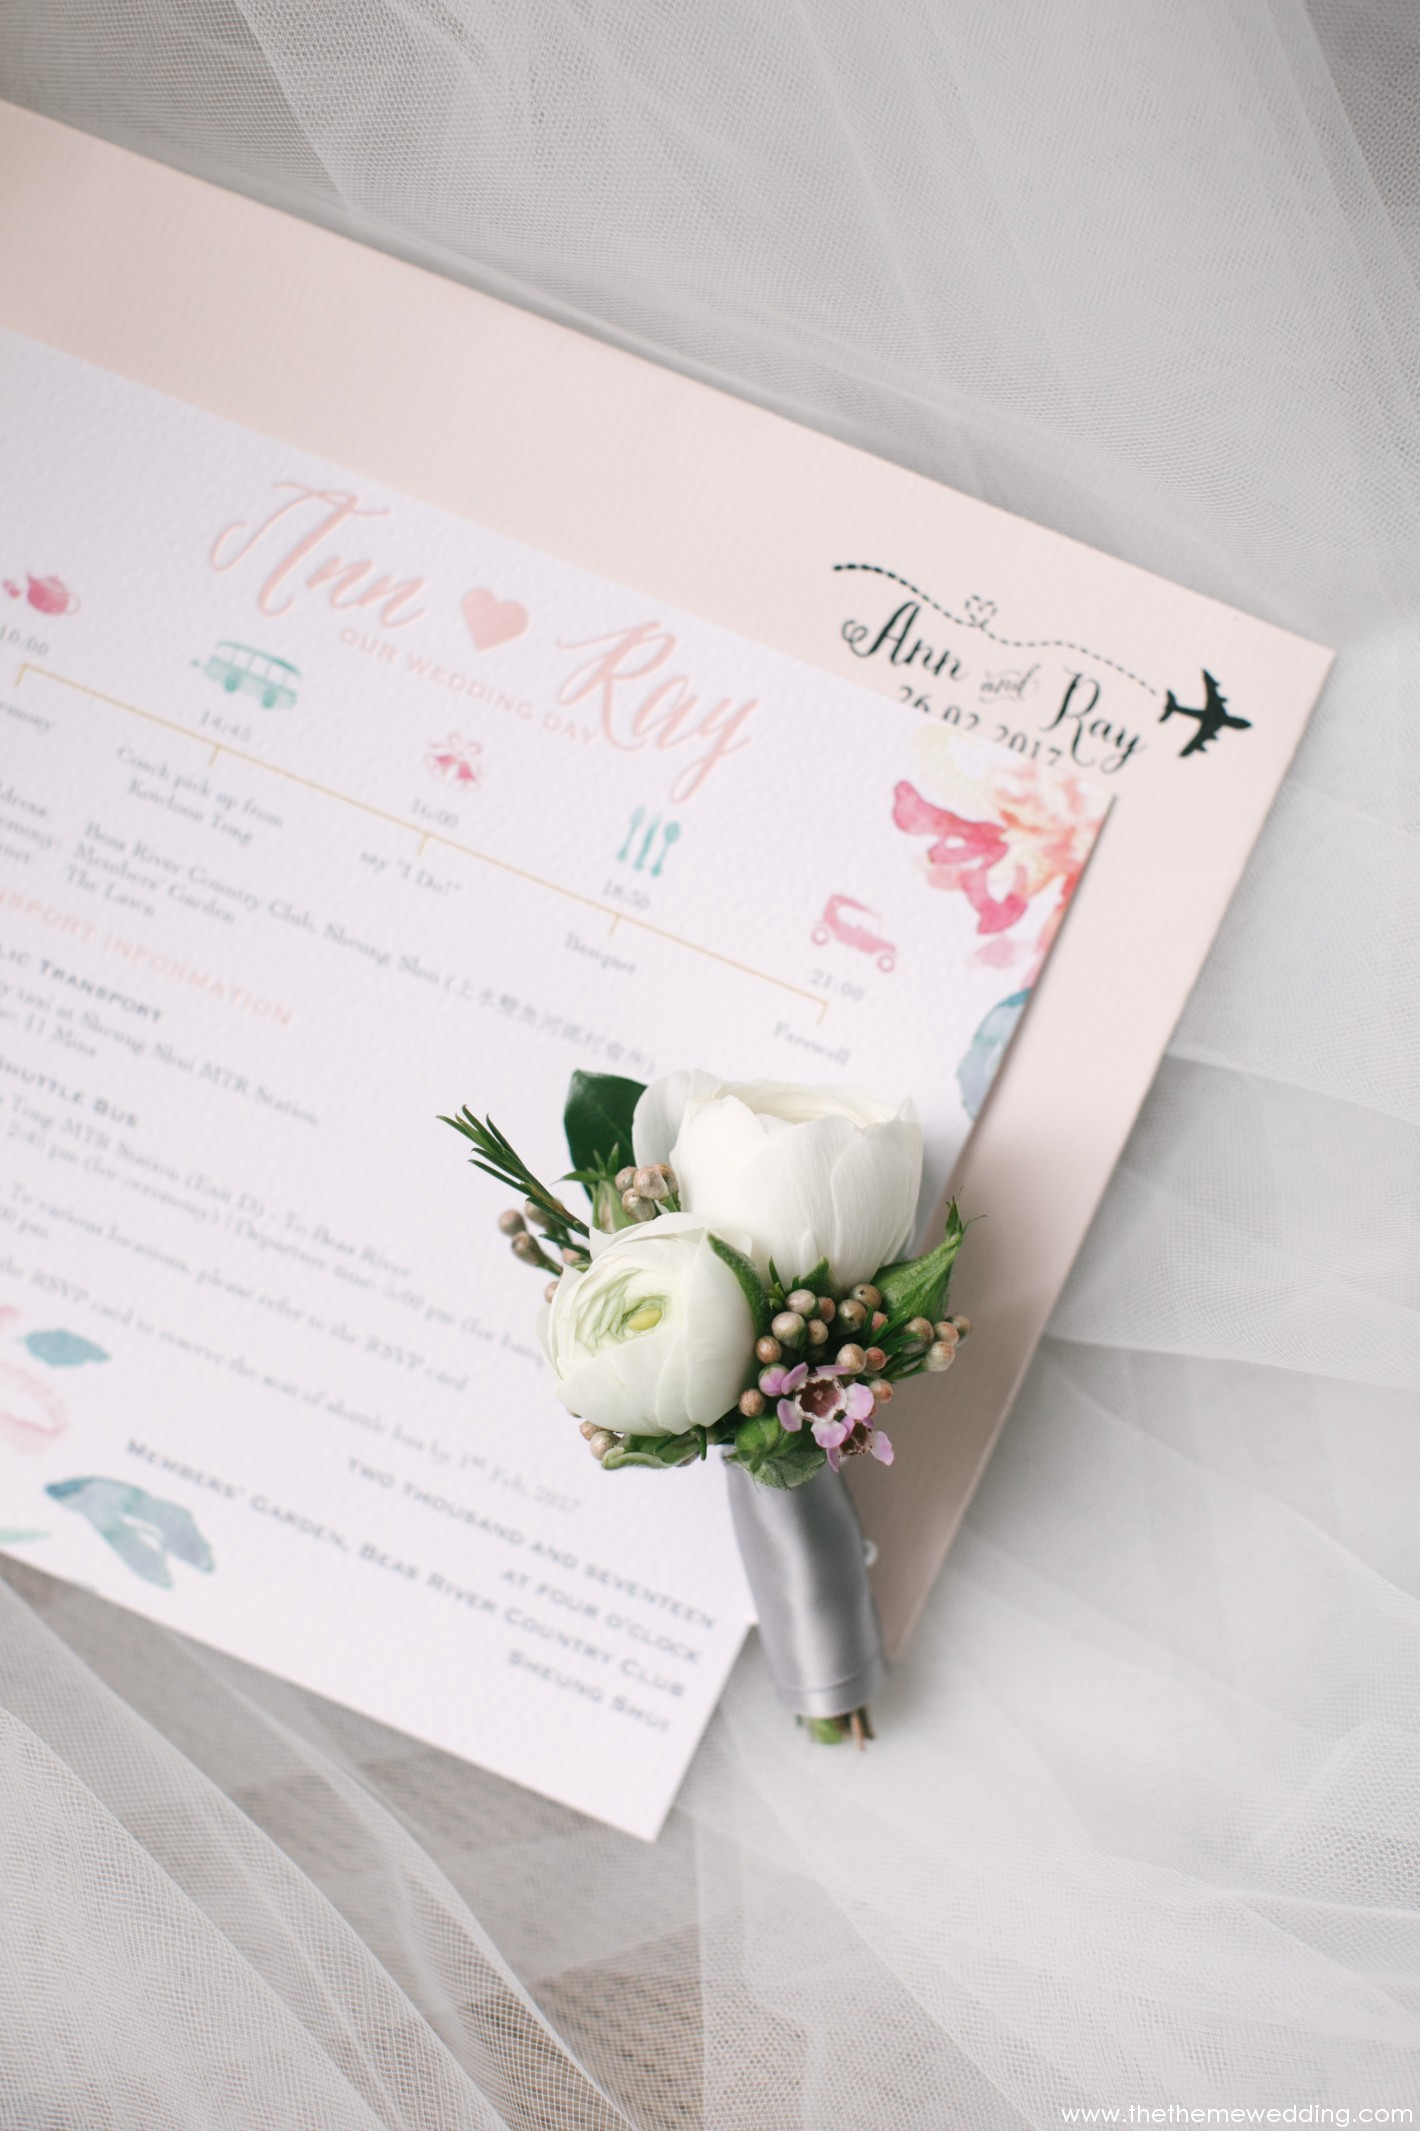 - For more, please visit www.thethemewedding.com